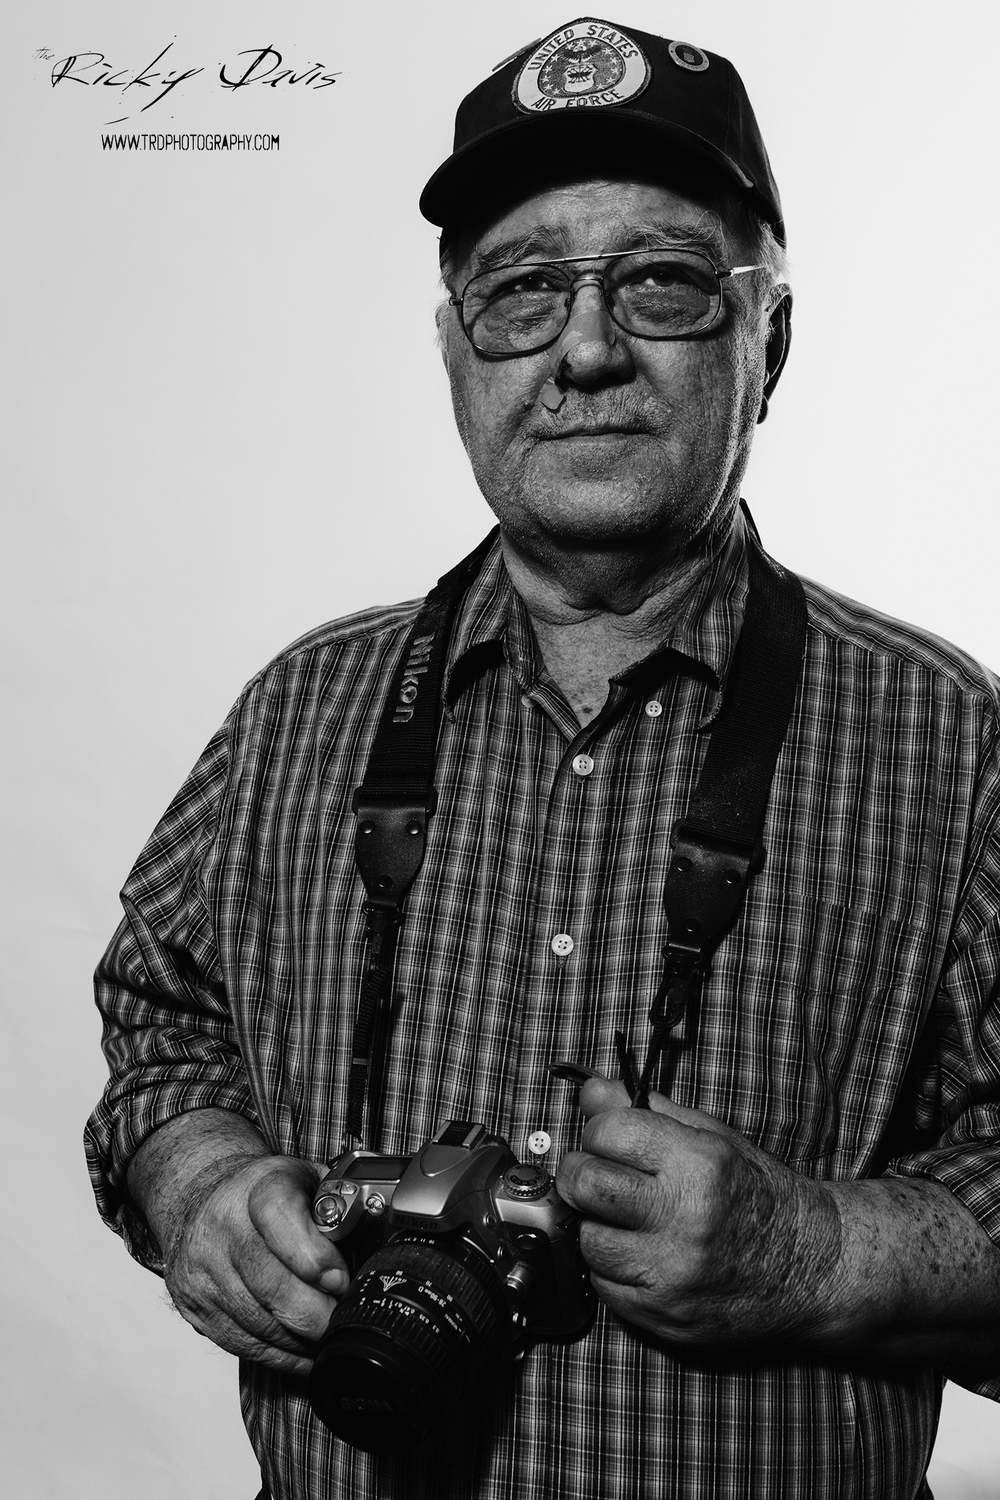 Vietnam Veteran Combat Photographer - Staff Sgt. Bill Potter - Photo - Ricky Davis of TRD Photography - Canon 6D.